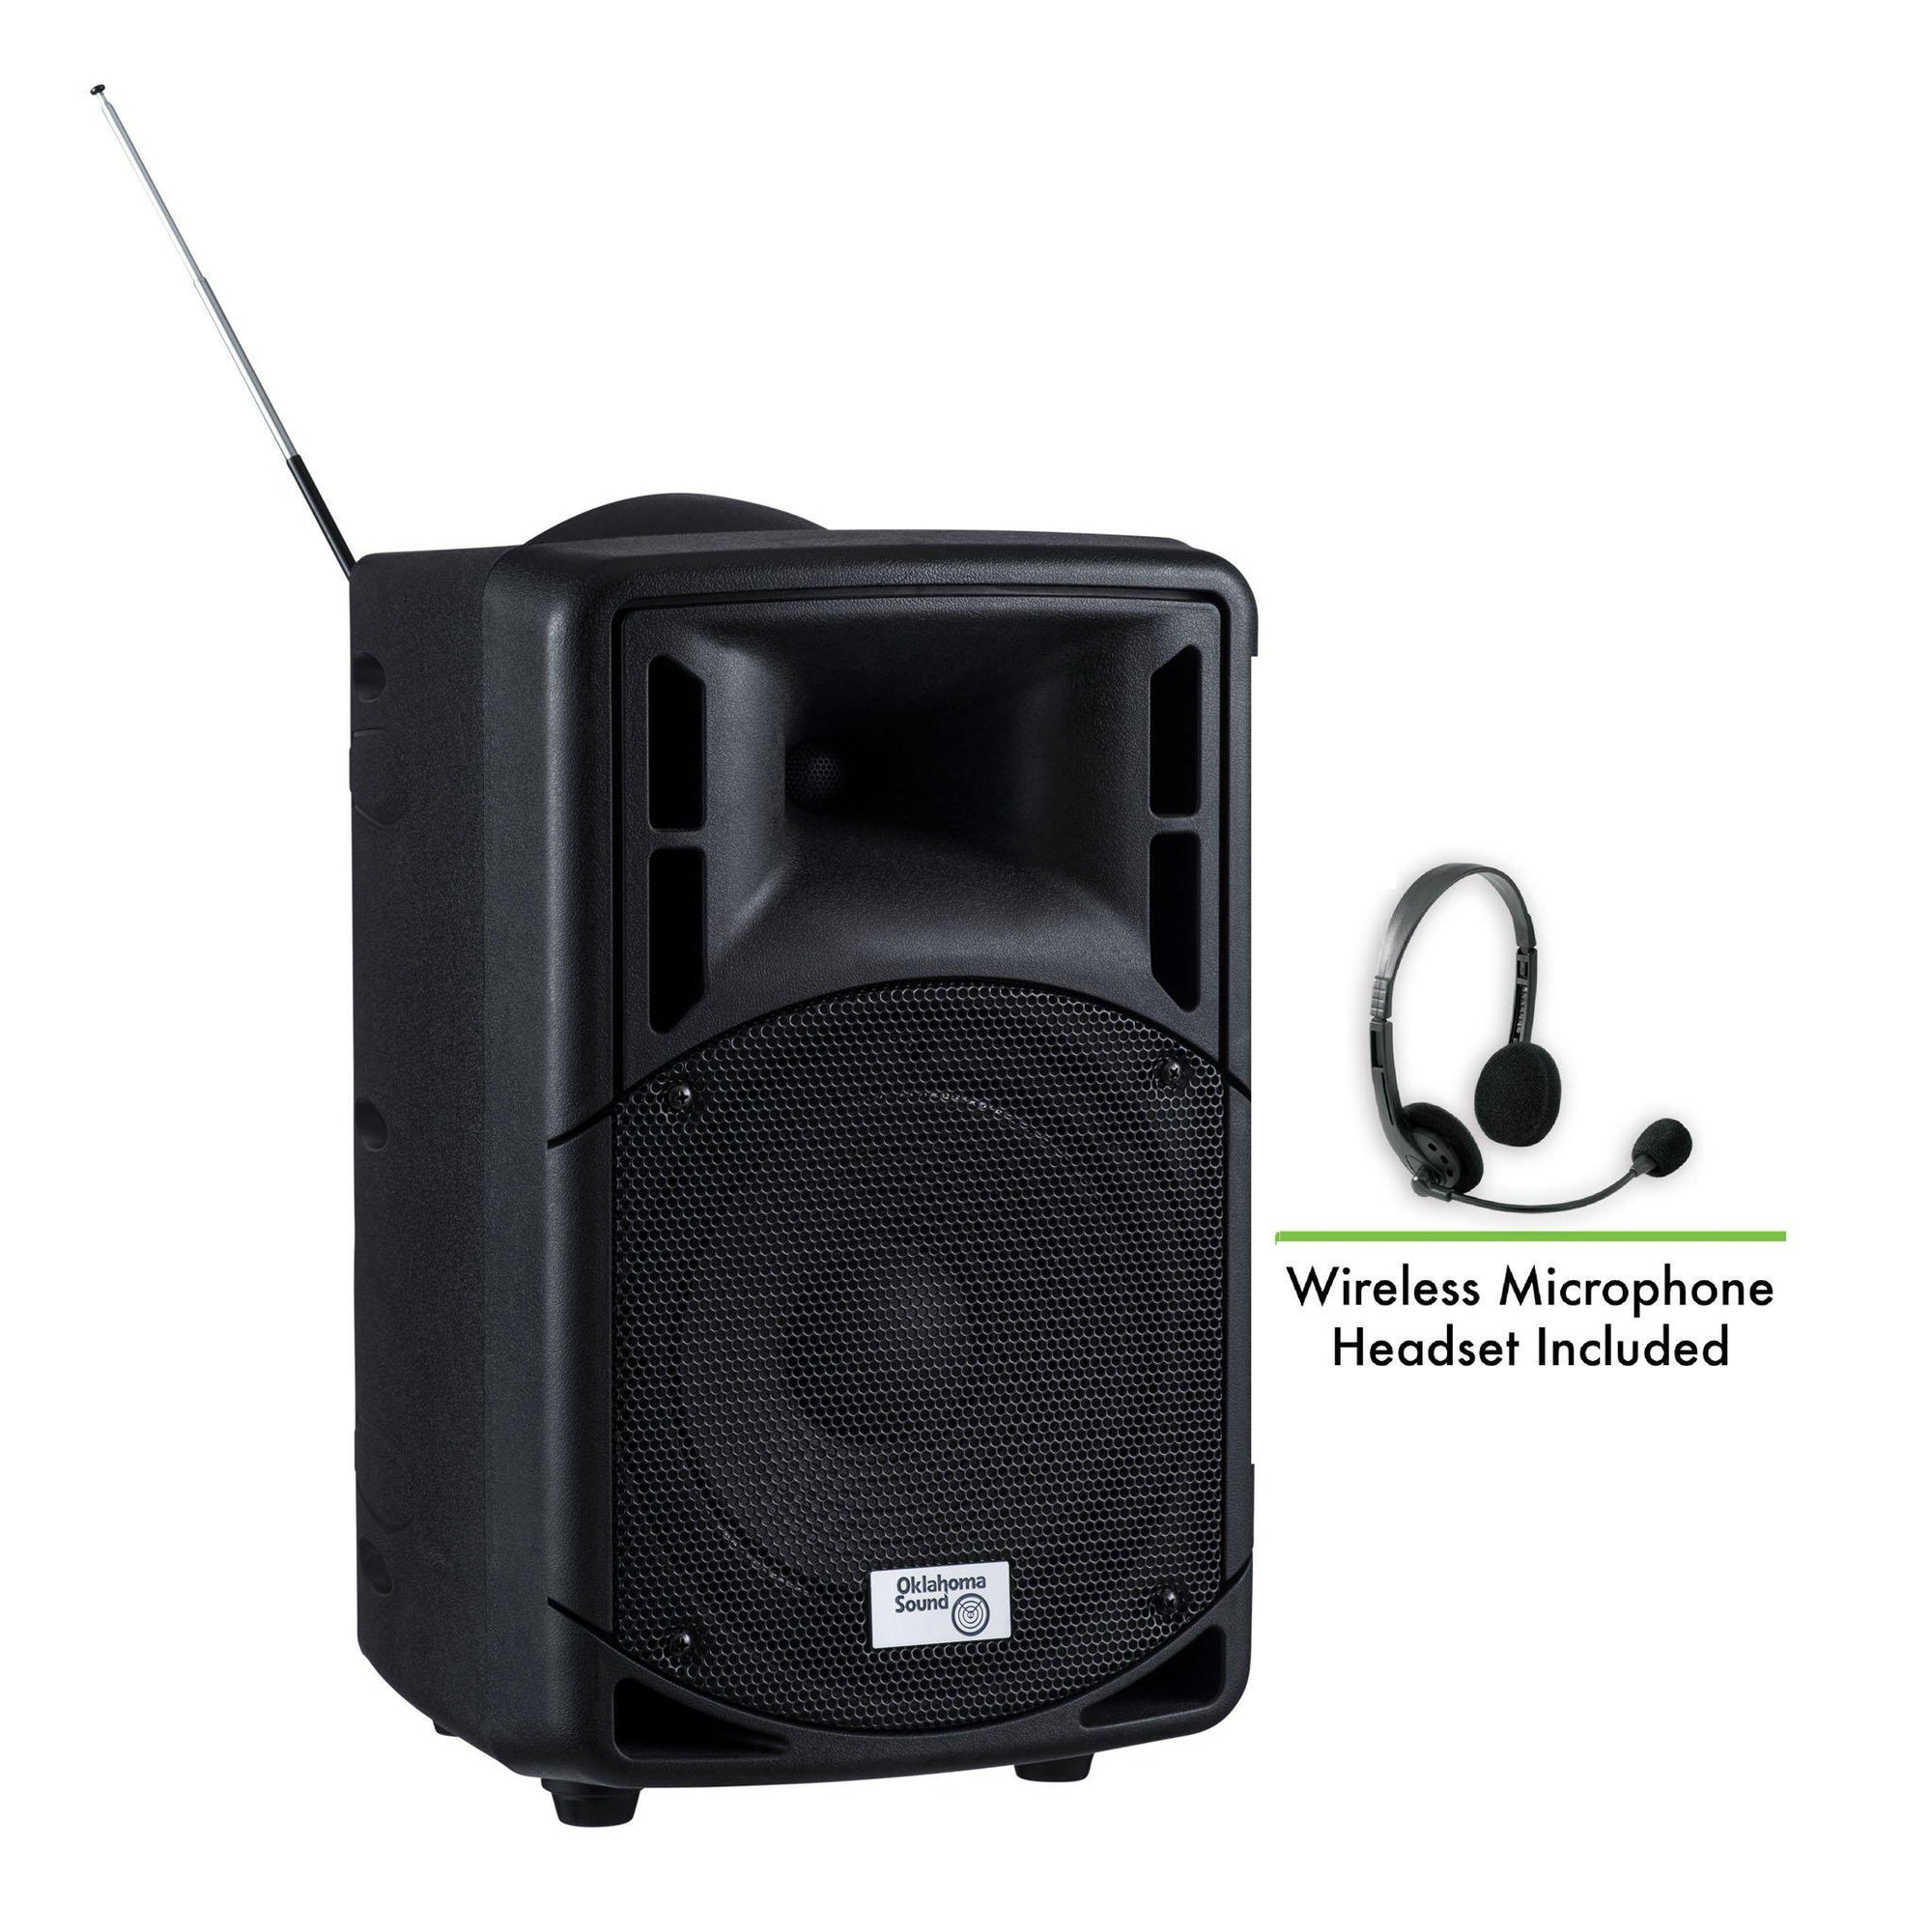 Oklahoma Sound® 40 Watt Wireless PA System w/ Wireless Headset Mic-Audio-Visual/Presentation-